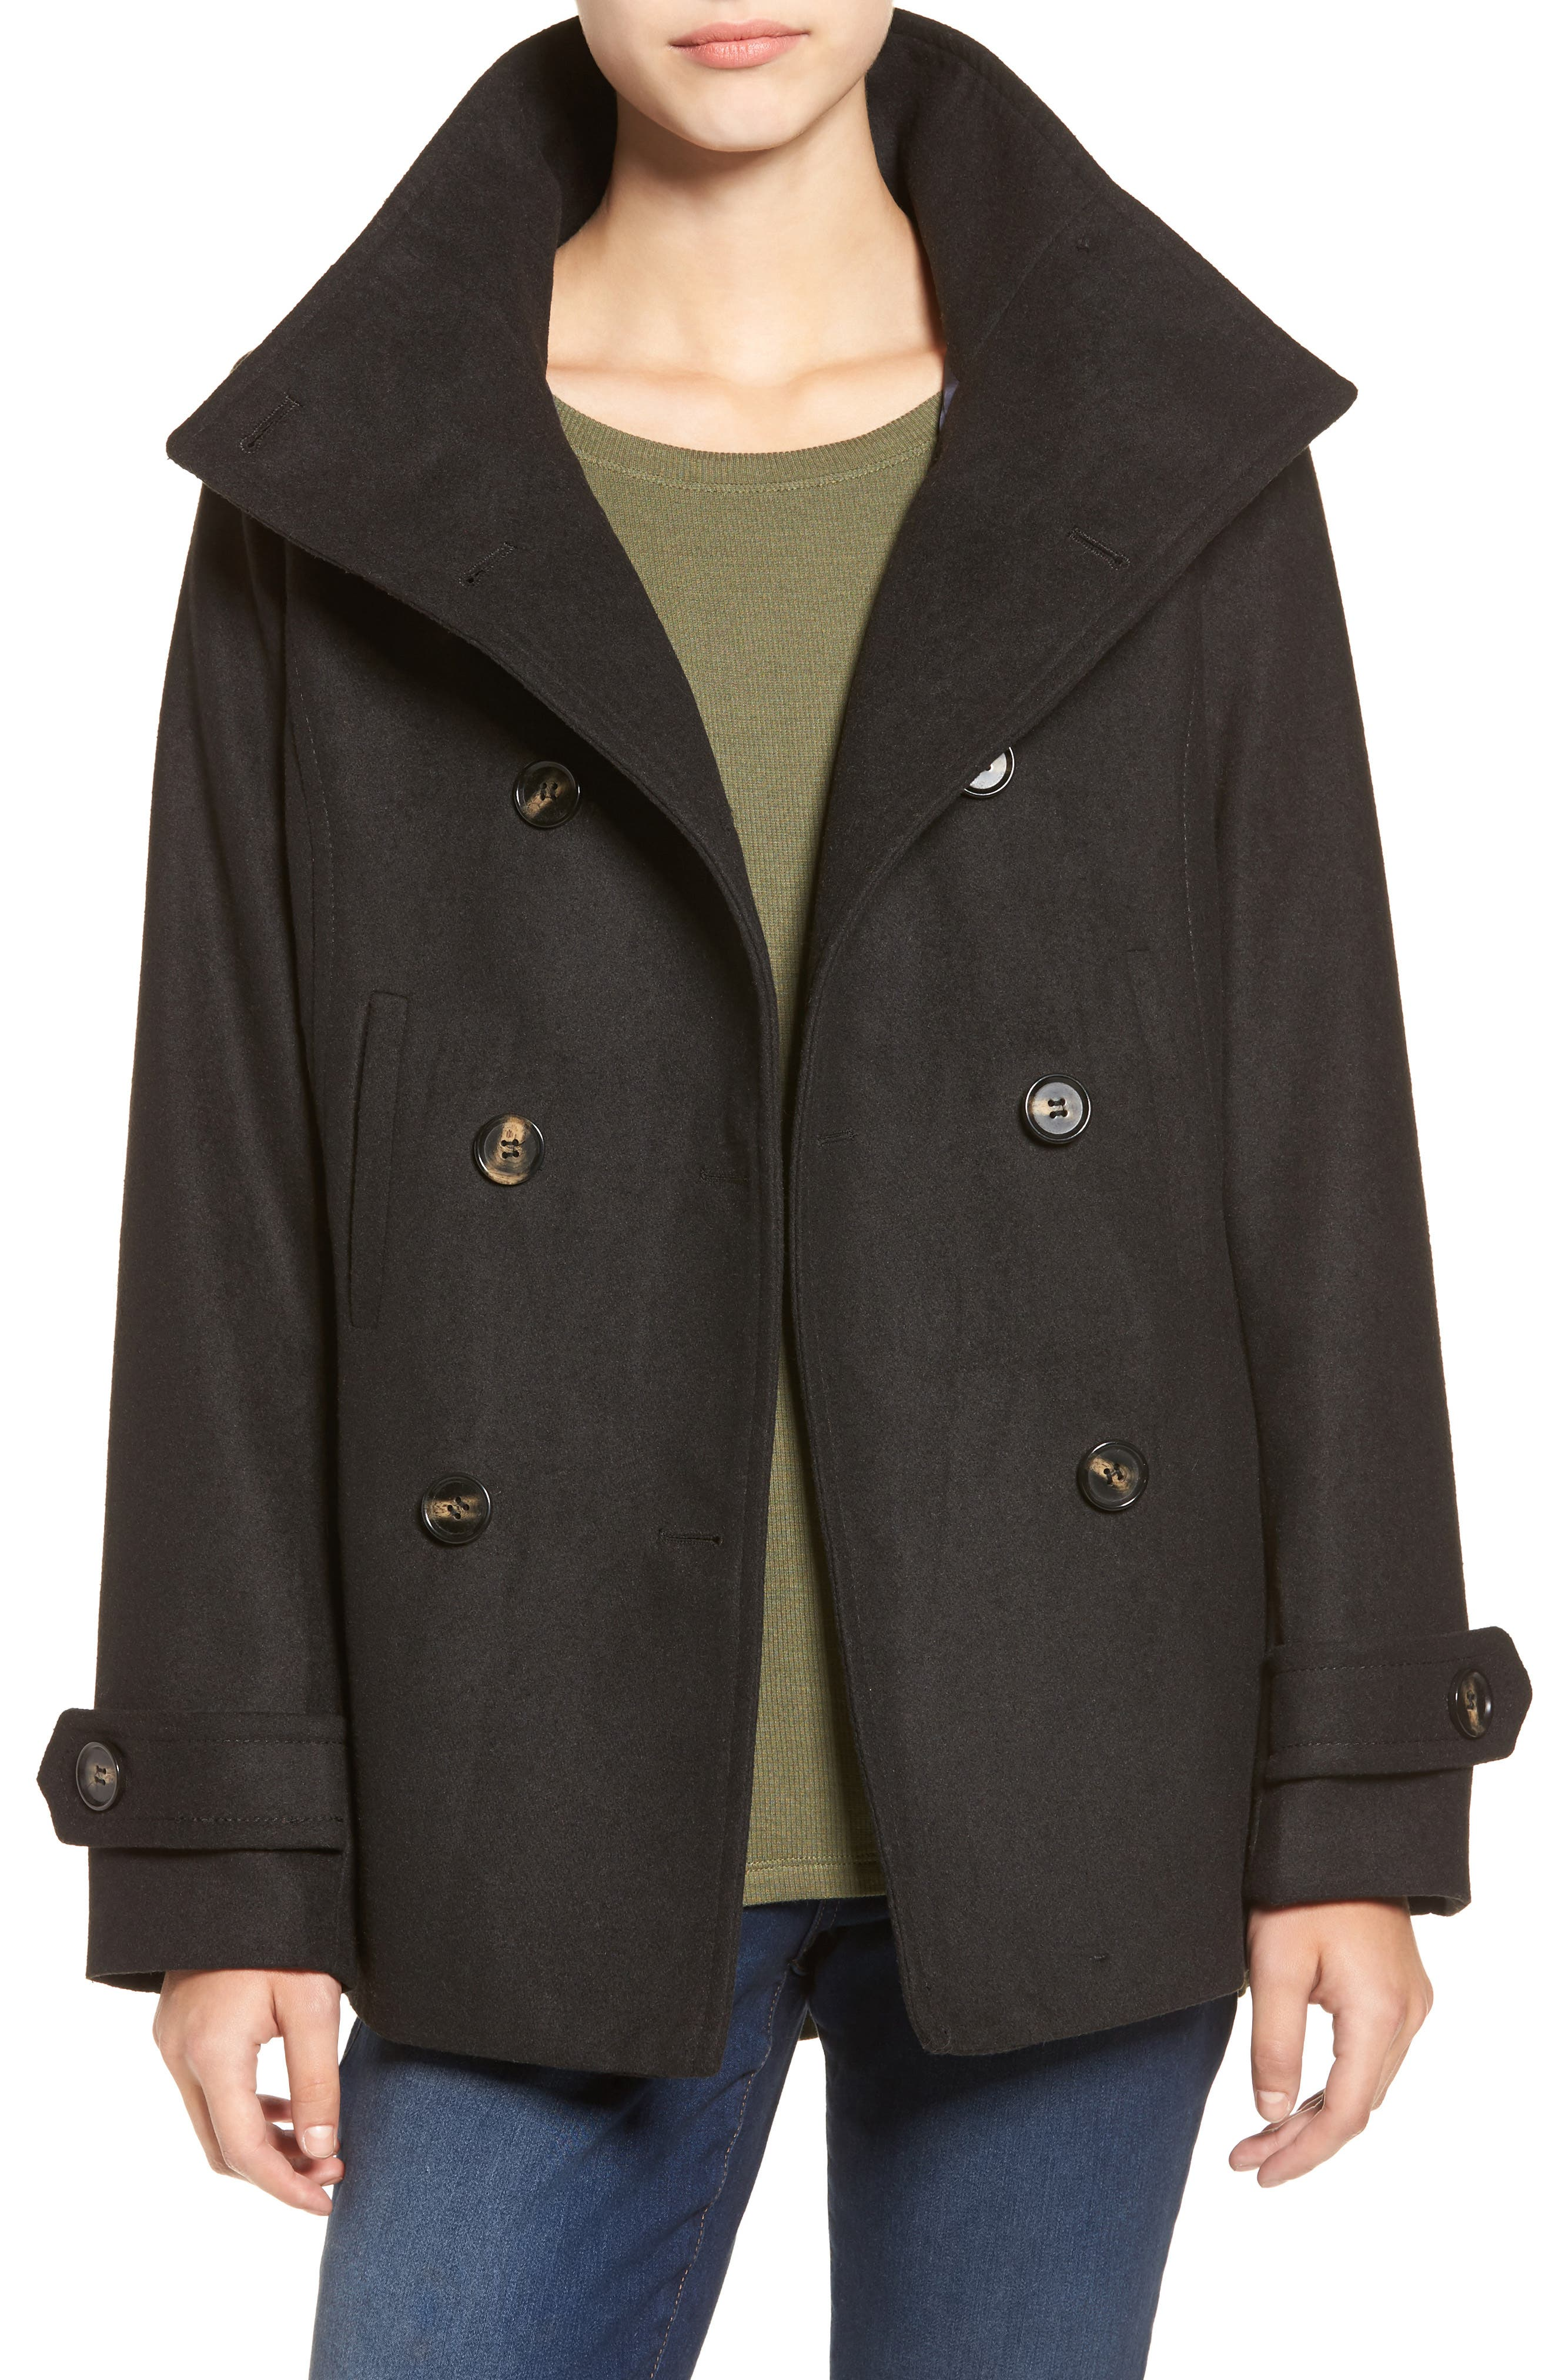 THREAD & SUPPLY,                             Double Breasted Peacoat,                             Main thumbnail 1, color,                             BLACK